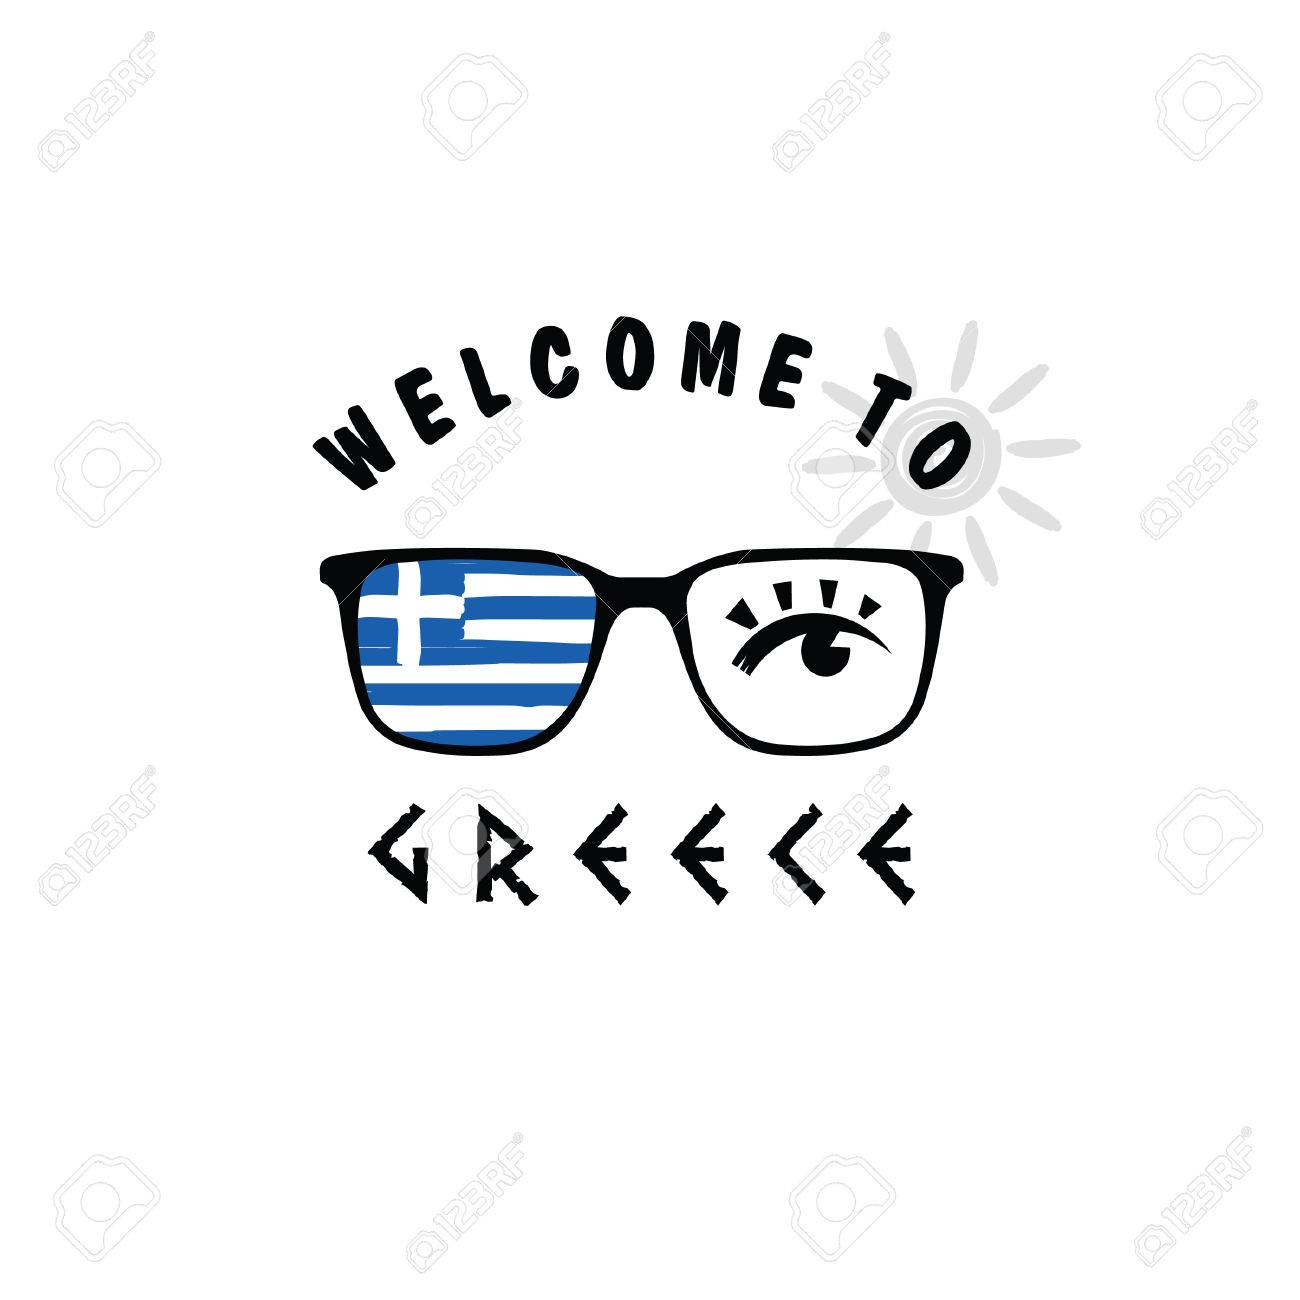 ca17ac8f18f Vector - welcome to greece icon paradise on sunglasses art illustration